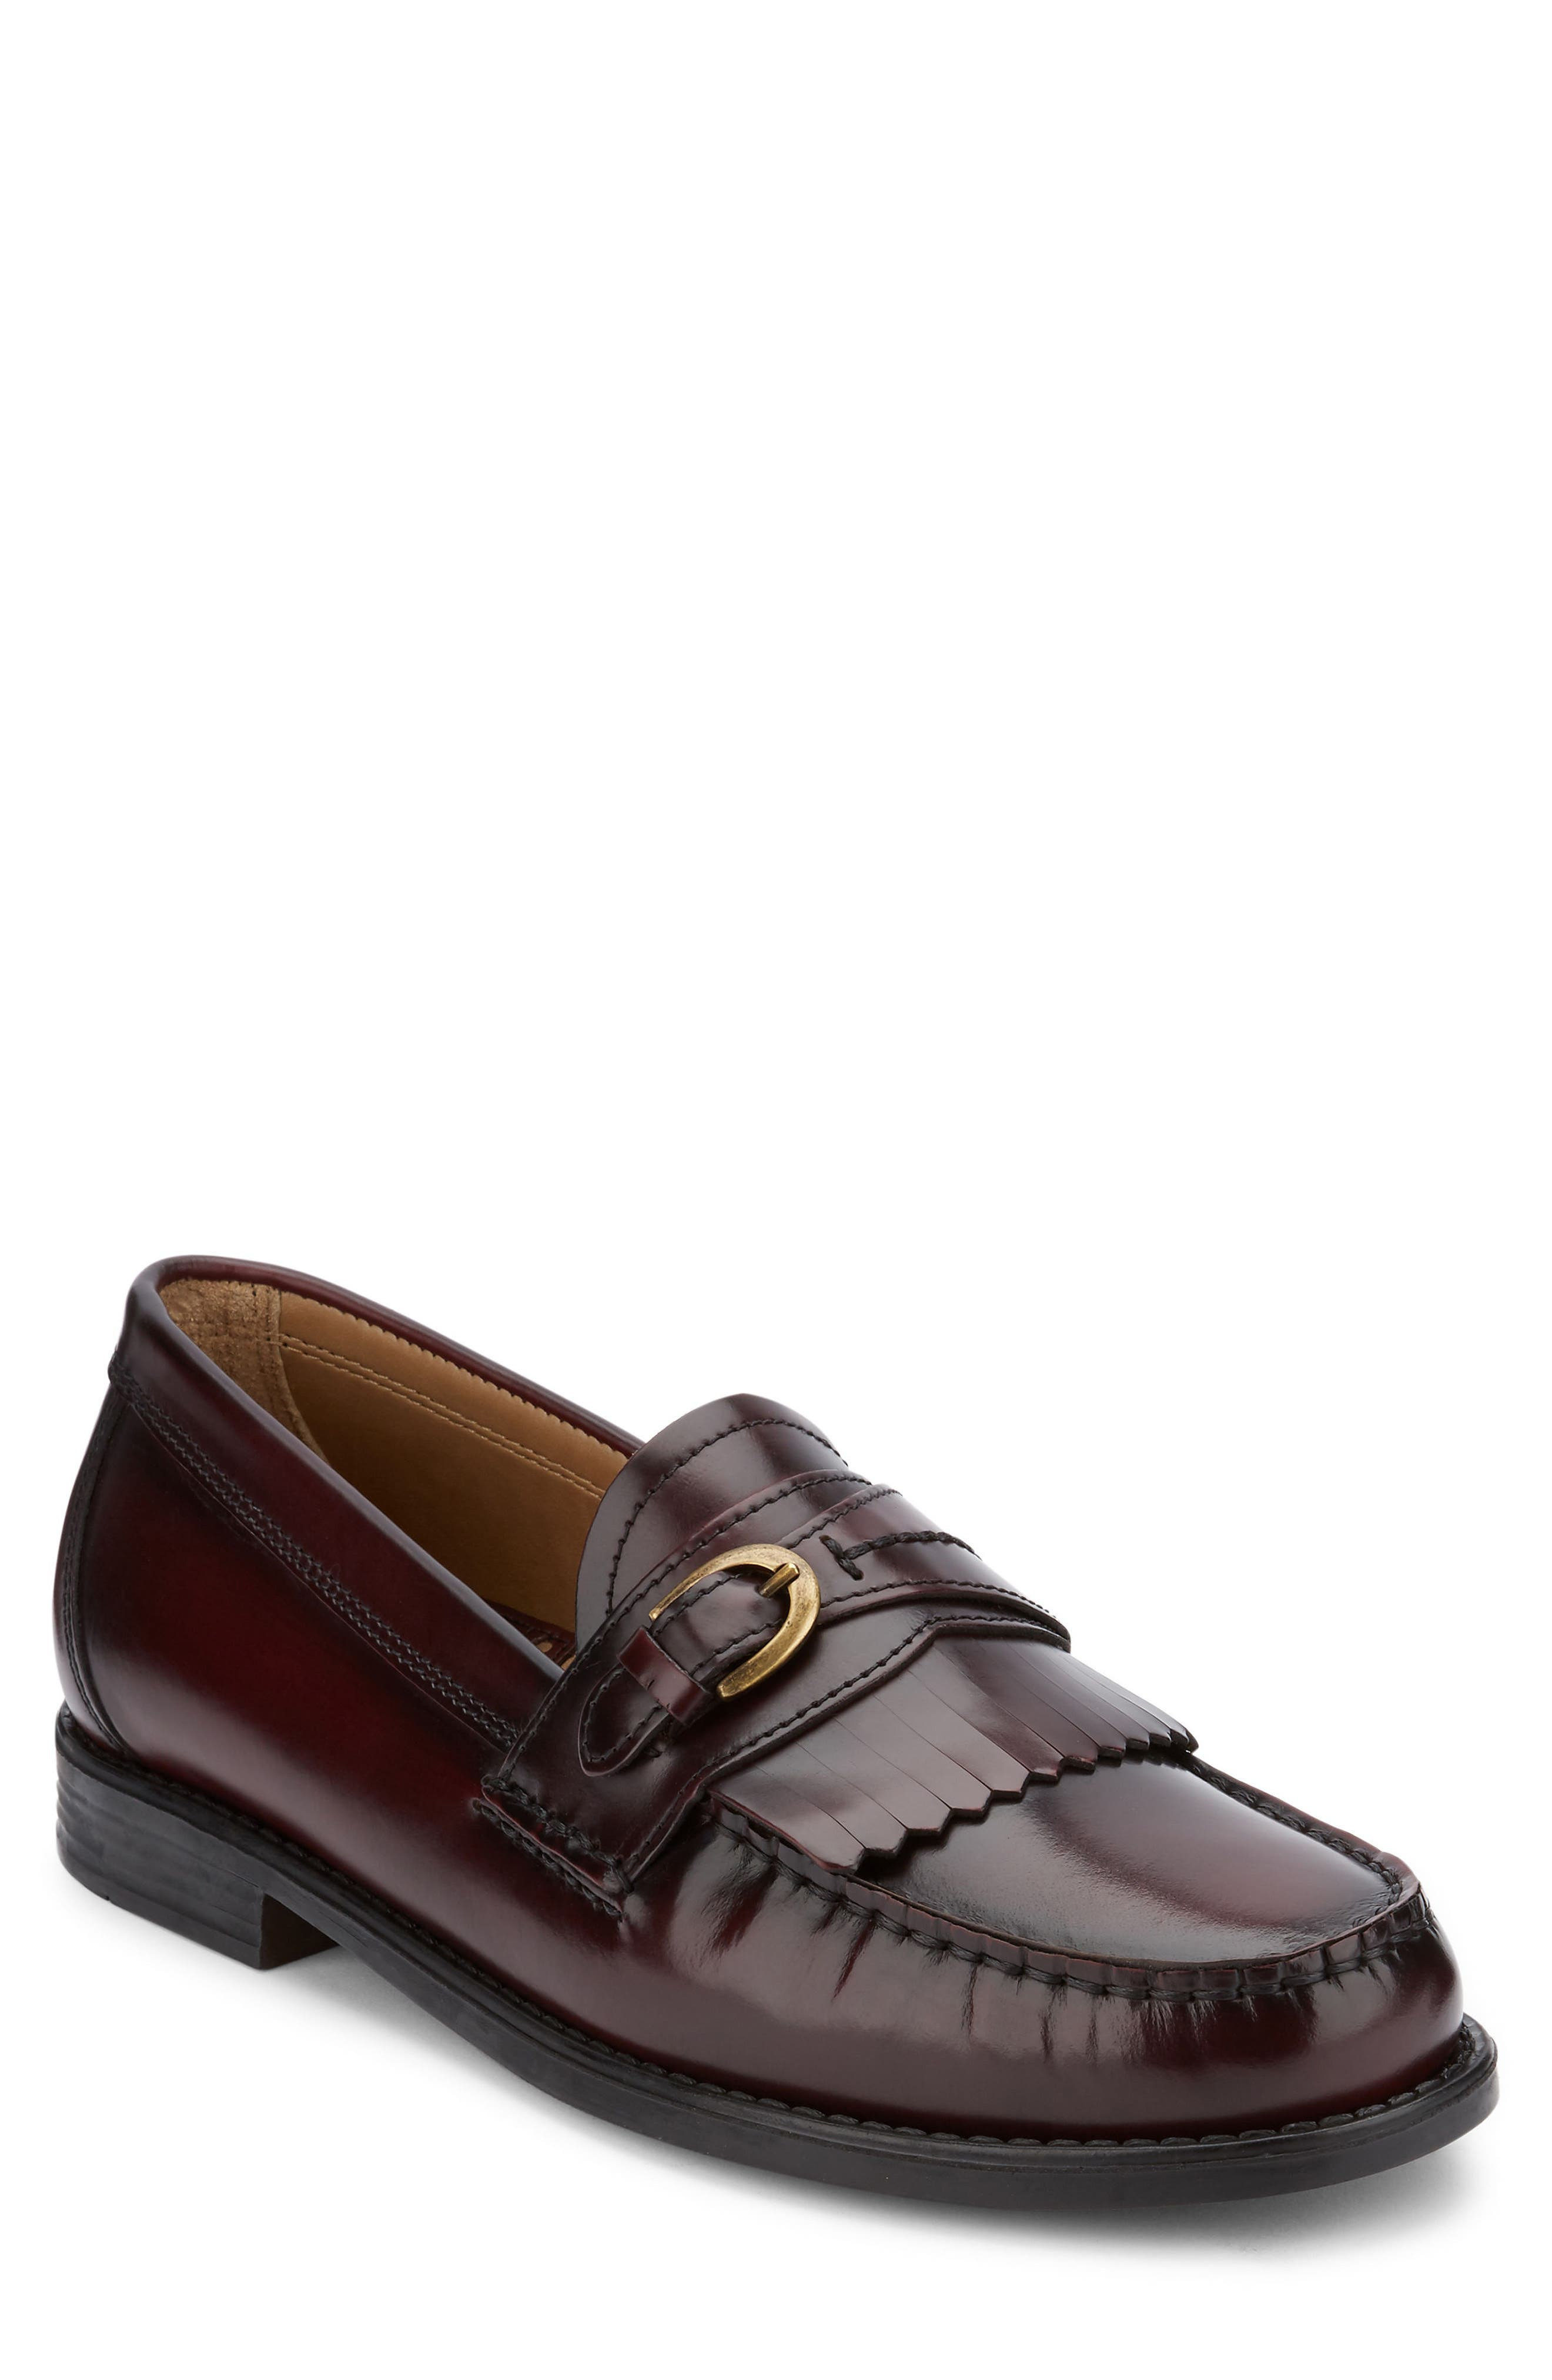 G.h. Bass & Co. Wakeley Kiltie Loafer, Burgundy